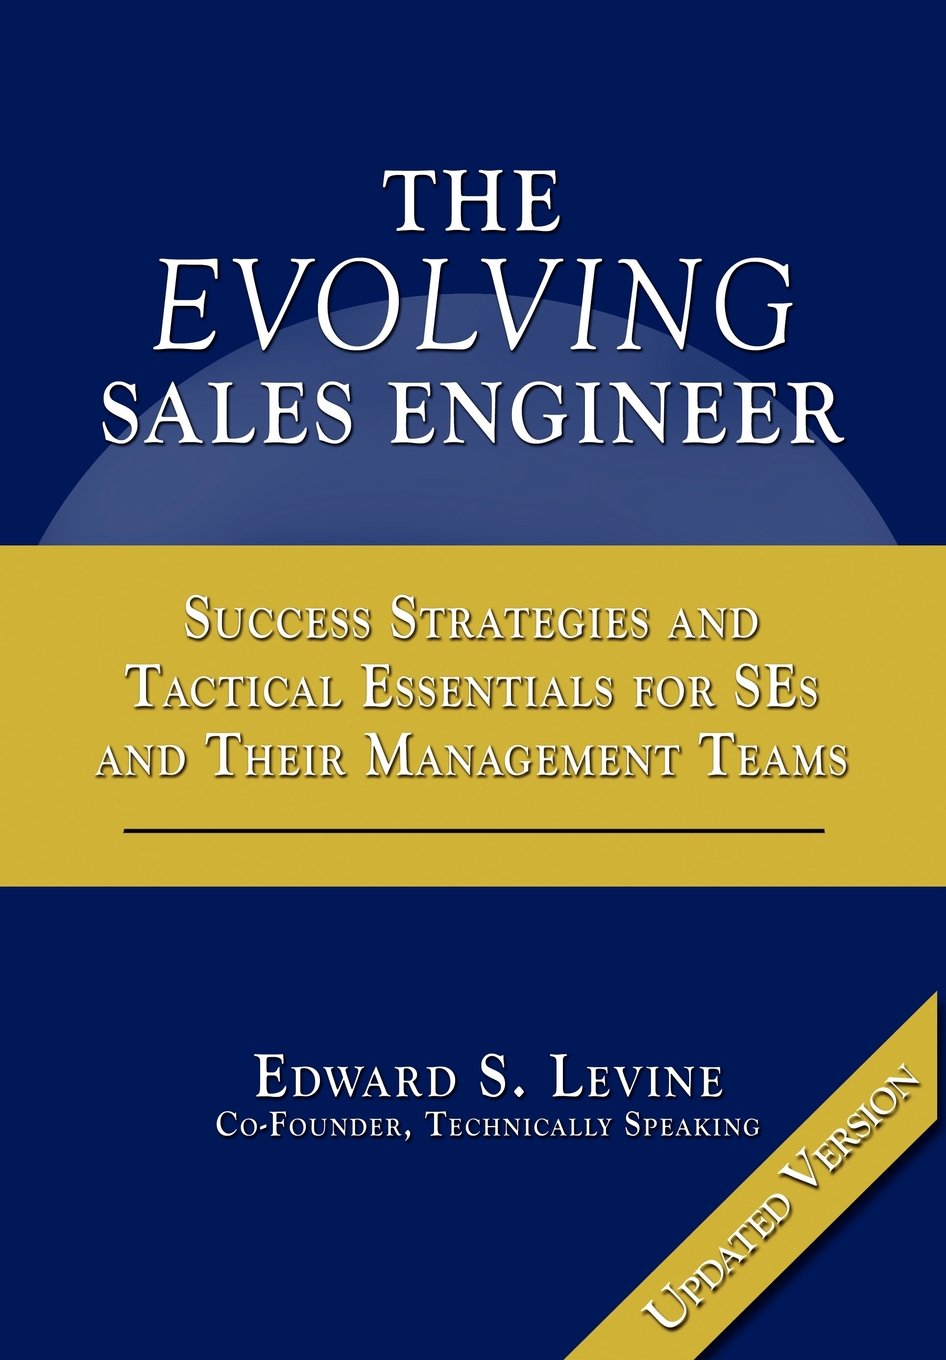 The Evolving Sales Engineer: Updated Version: Edward S. Levine: 9781457513121: Amazon.com: Books